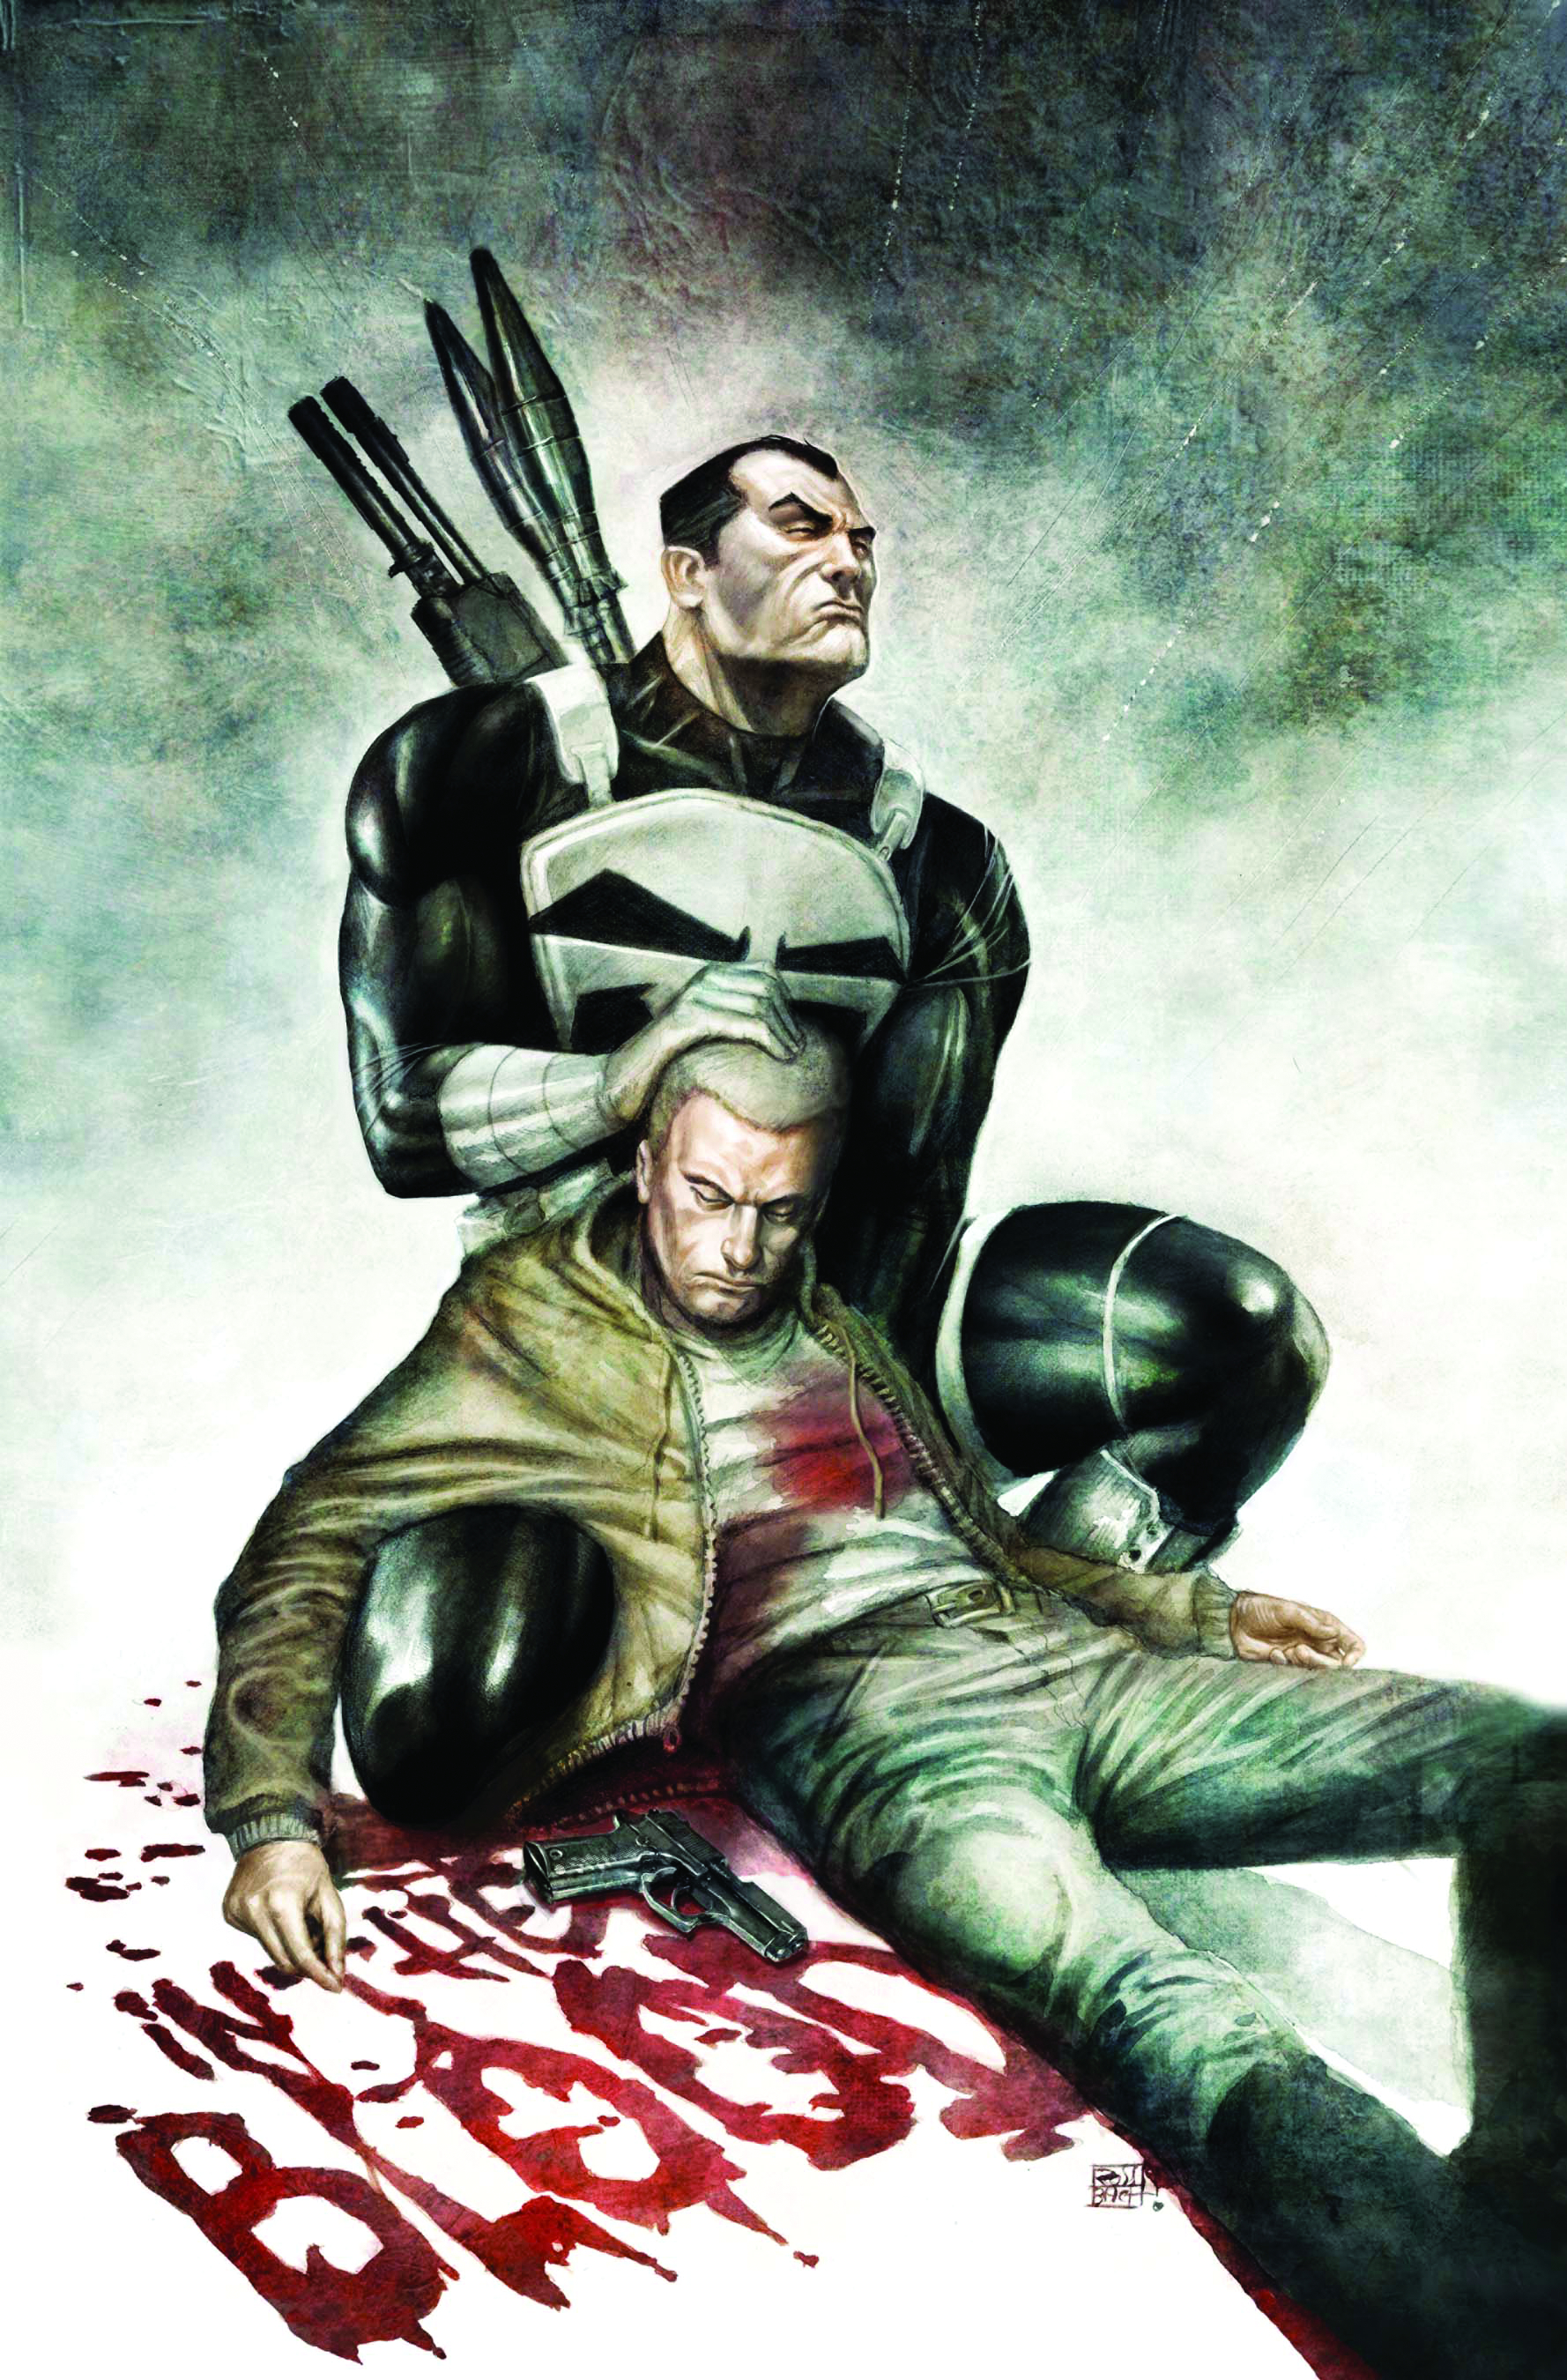 PUNISHER IN BLOOD #5 (OF 5)